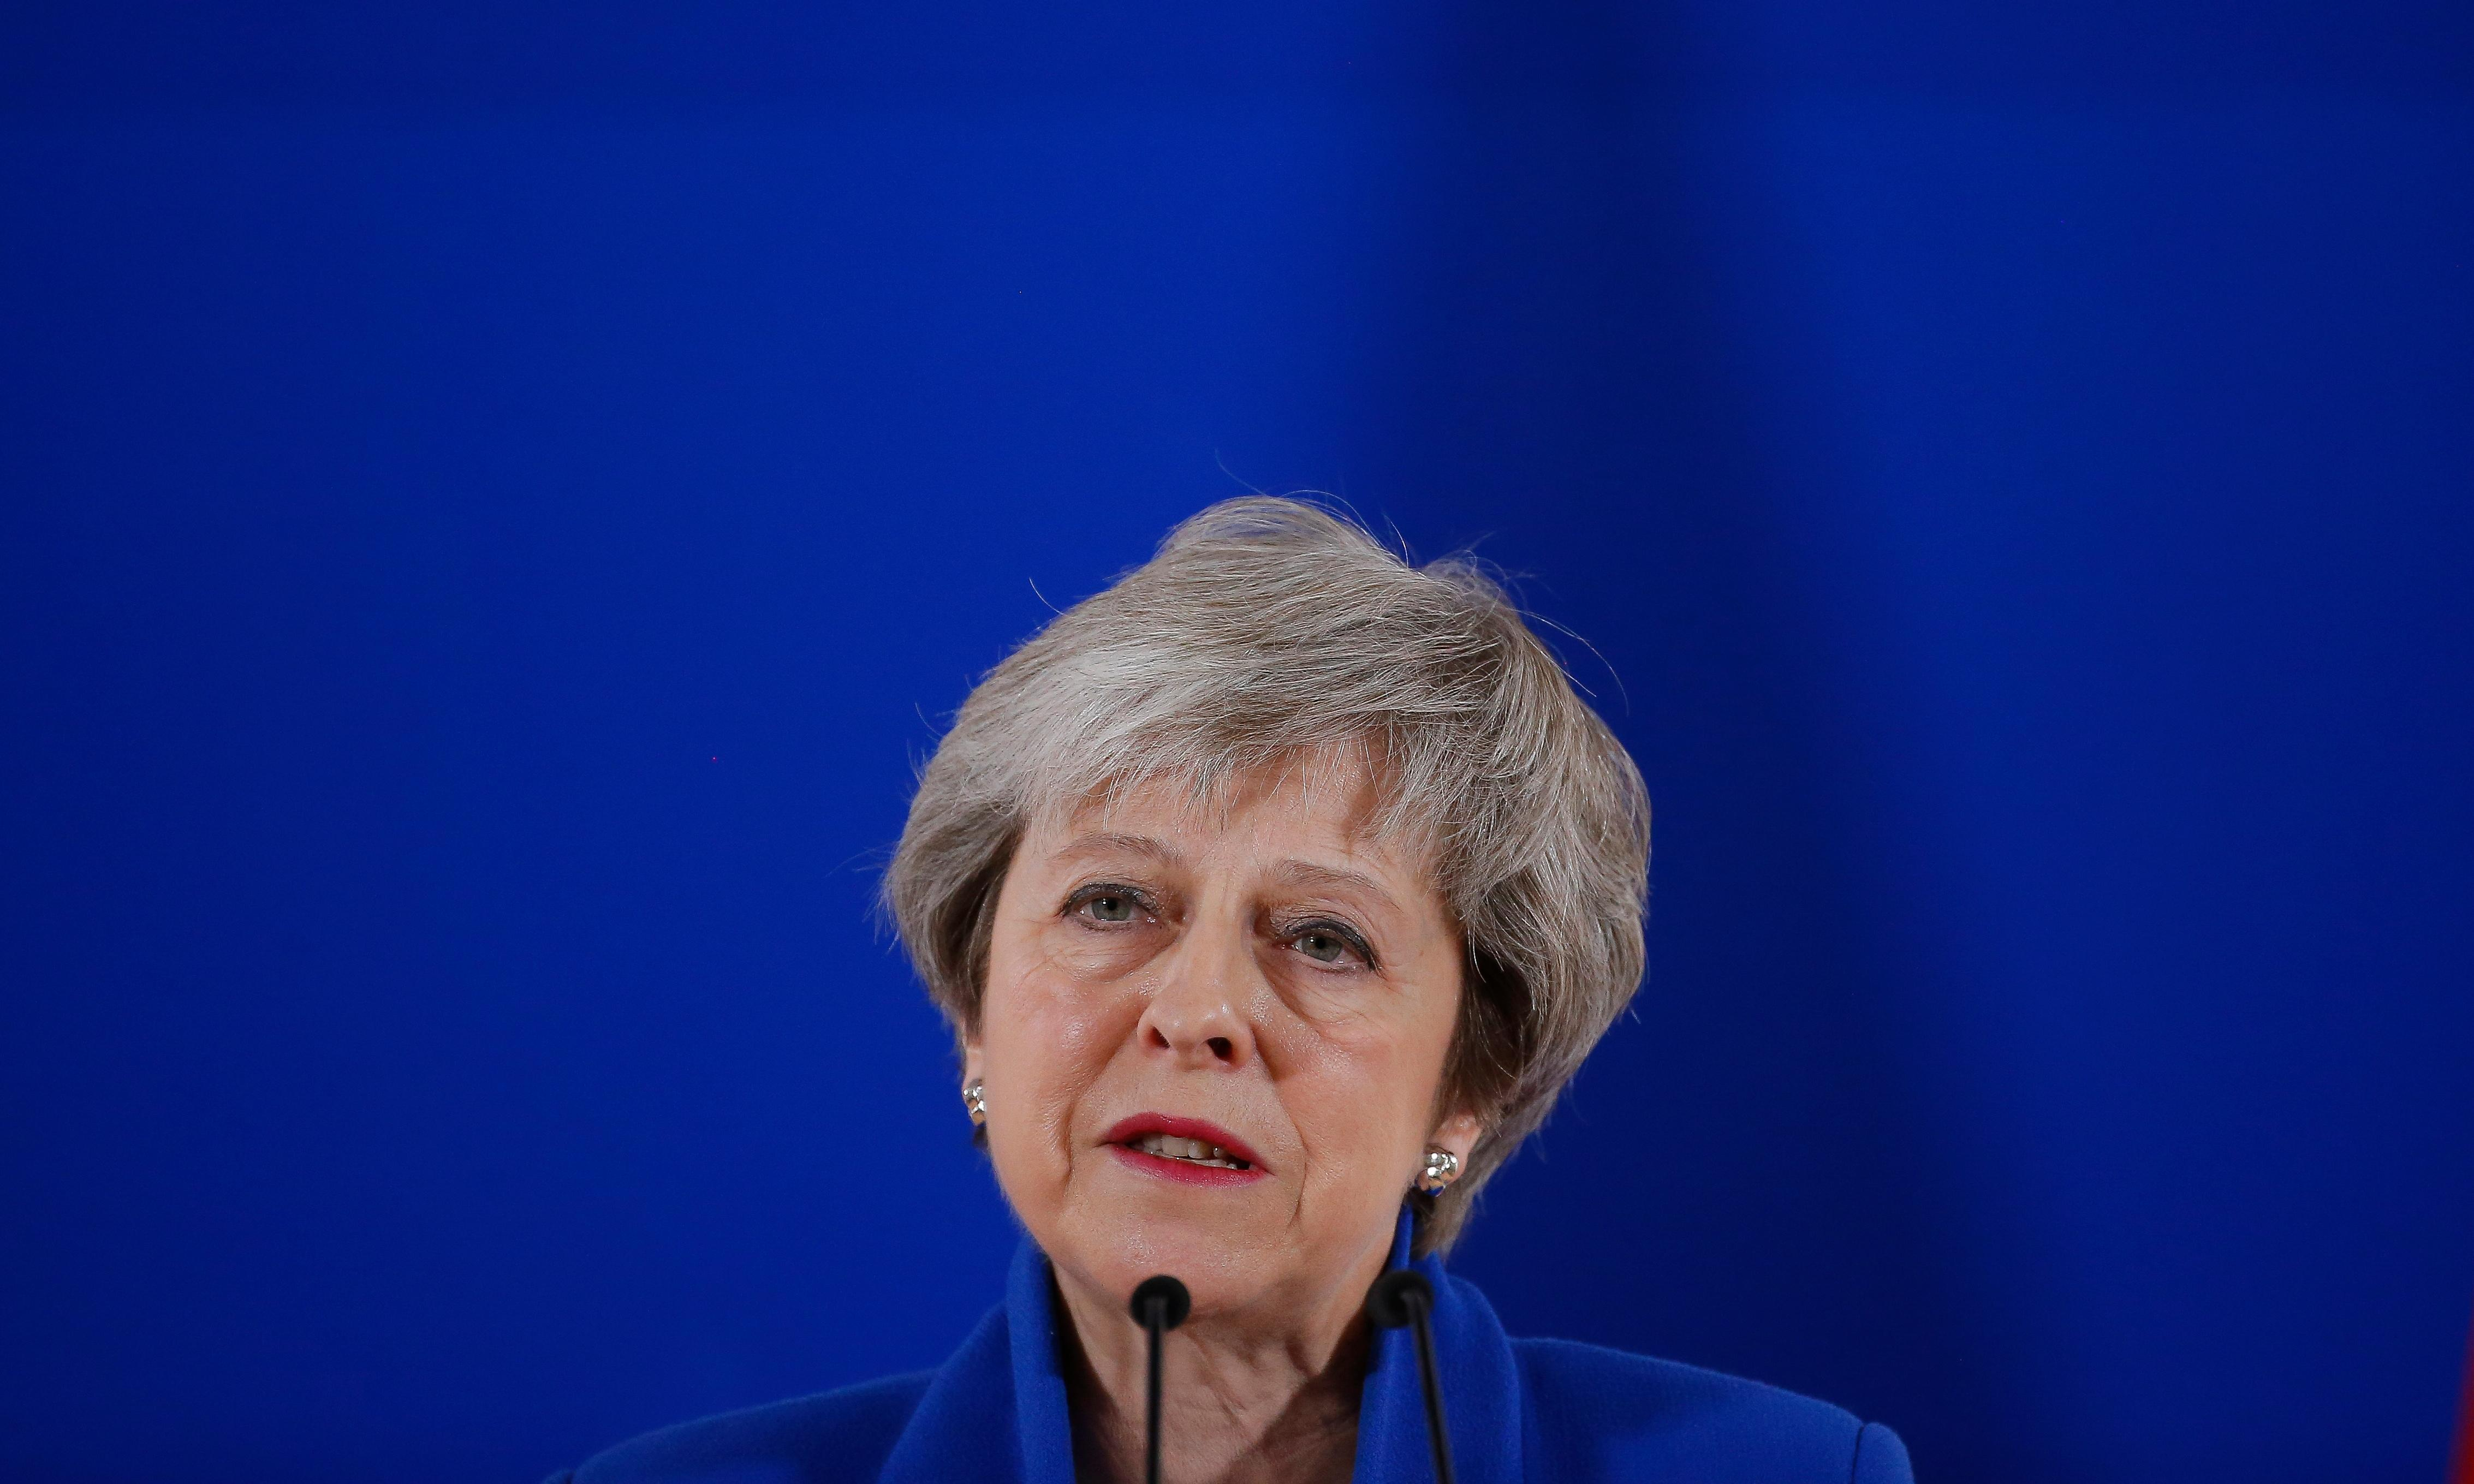 Theresa May never had a grip on the crown that fell into her lap